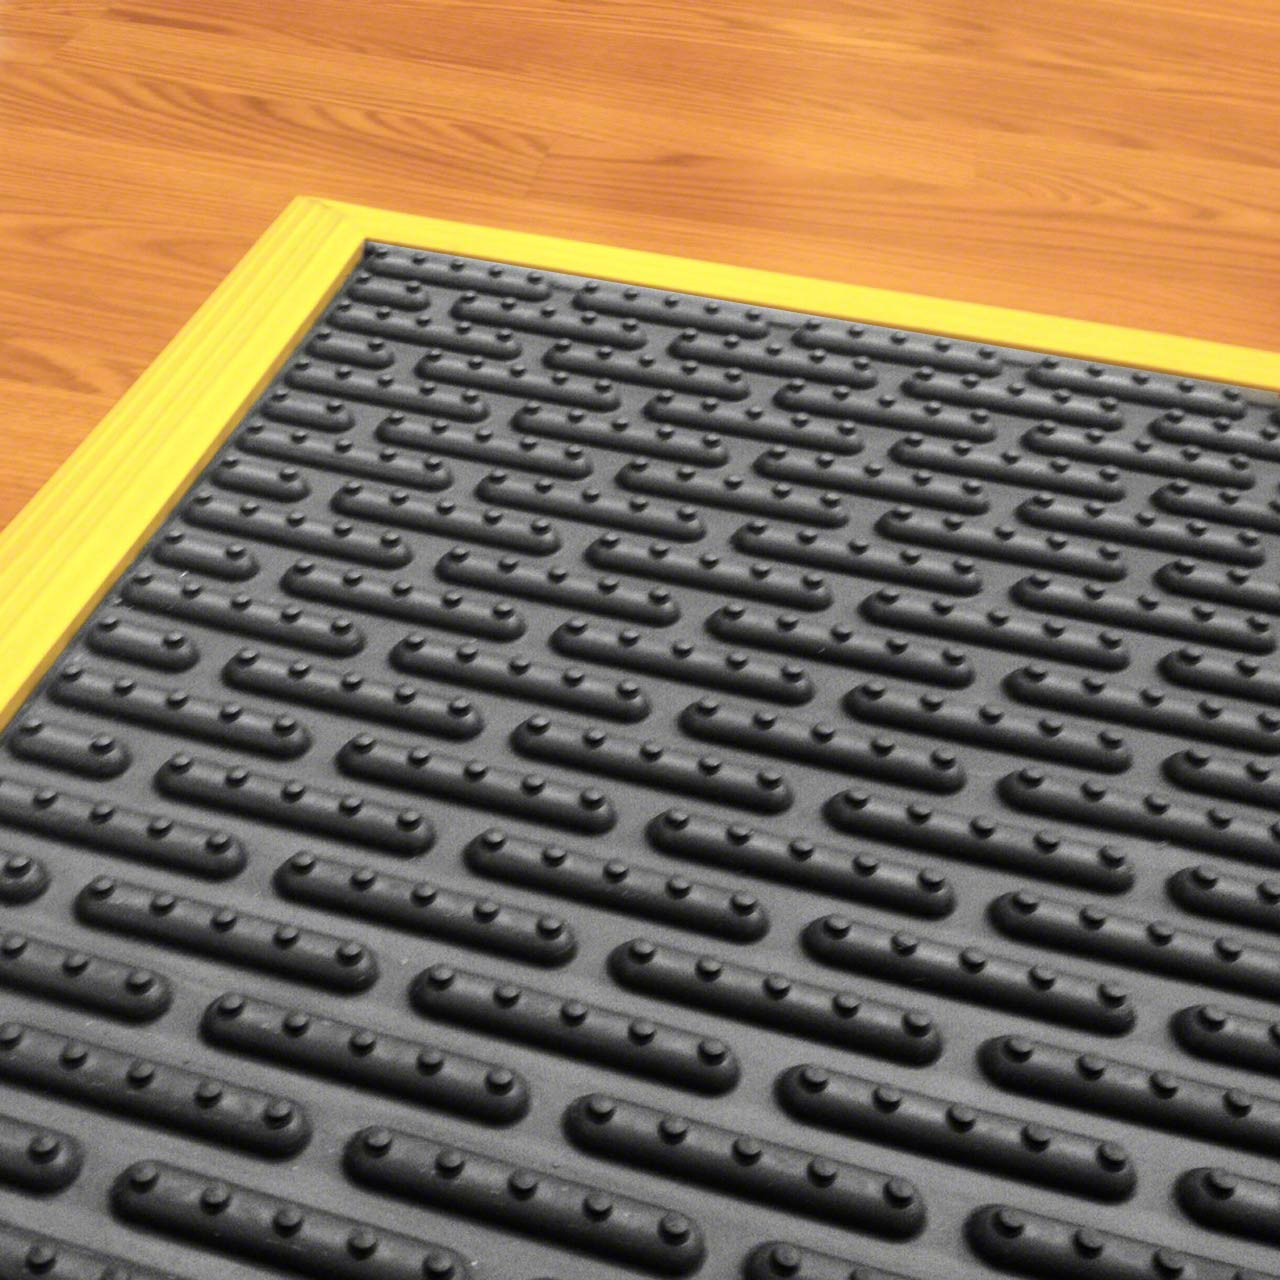 Ergomat floor matting can be installed on the entire floor or in special areas needing protection